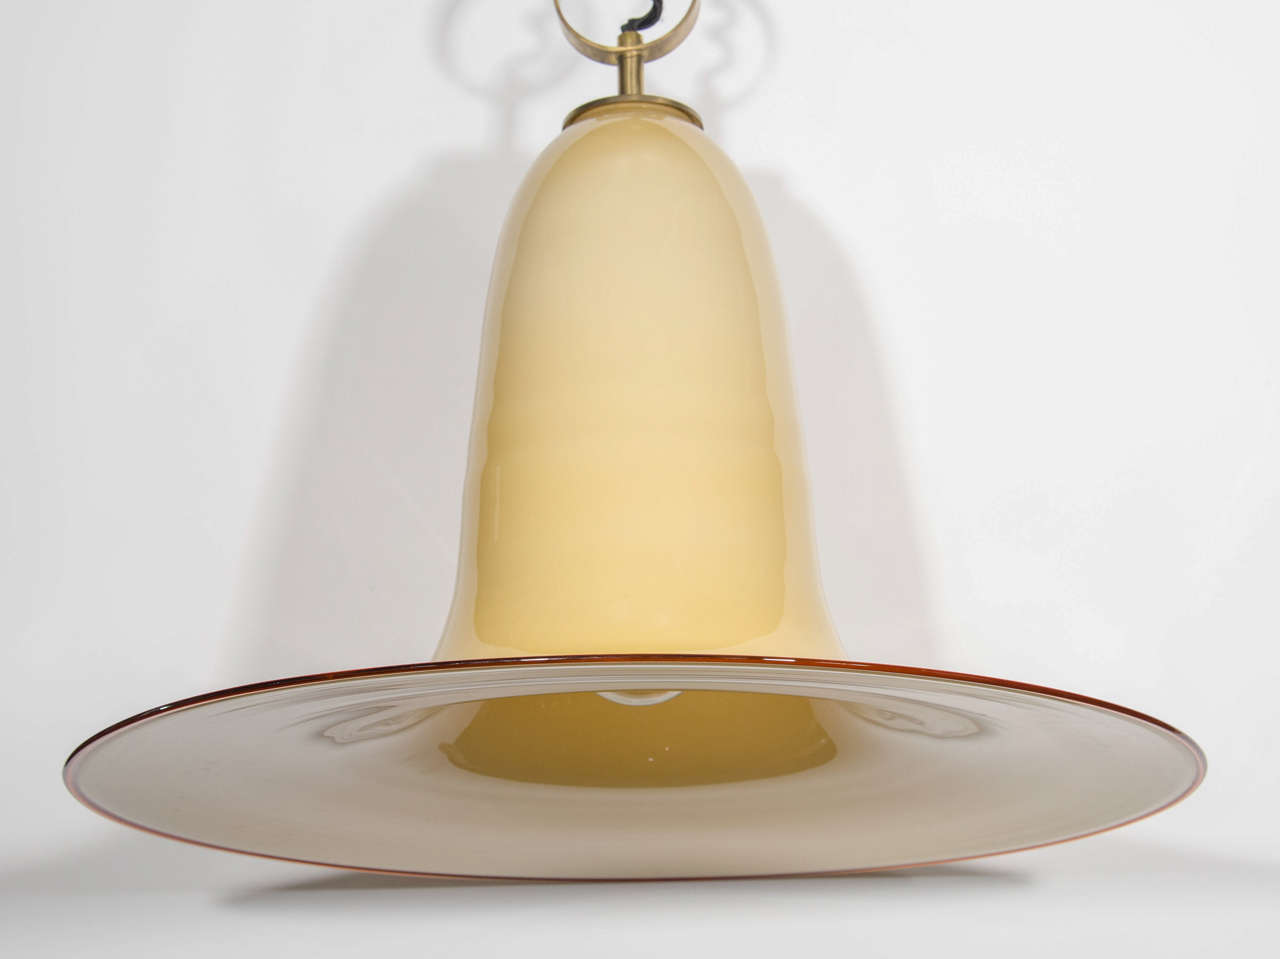 large murano glass pendant light by seguso at 1stdibs. Black Bedroom Furniture Sets. Home Design Ideas